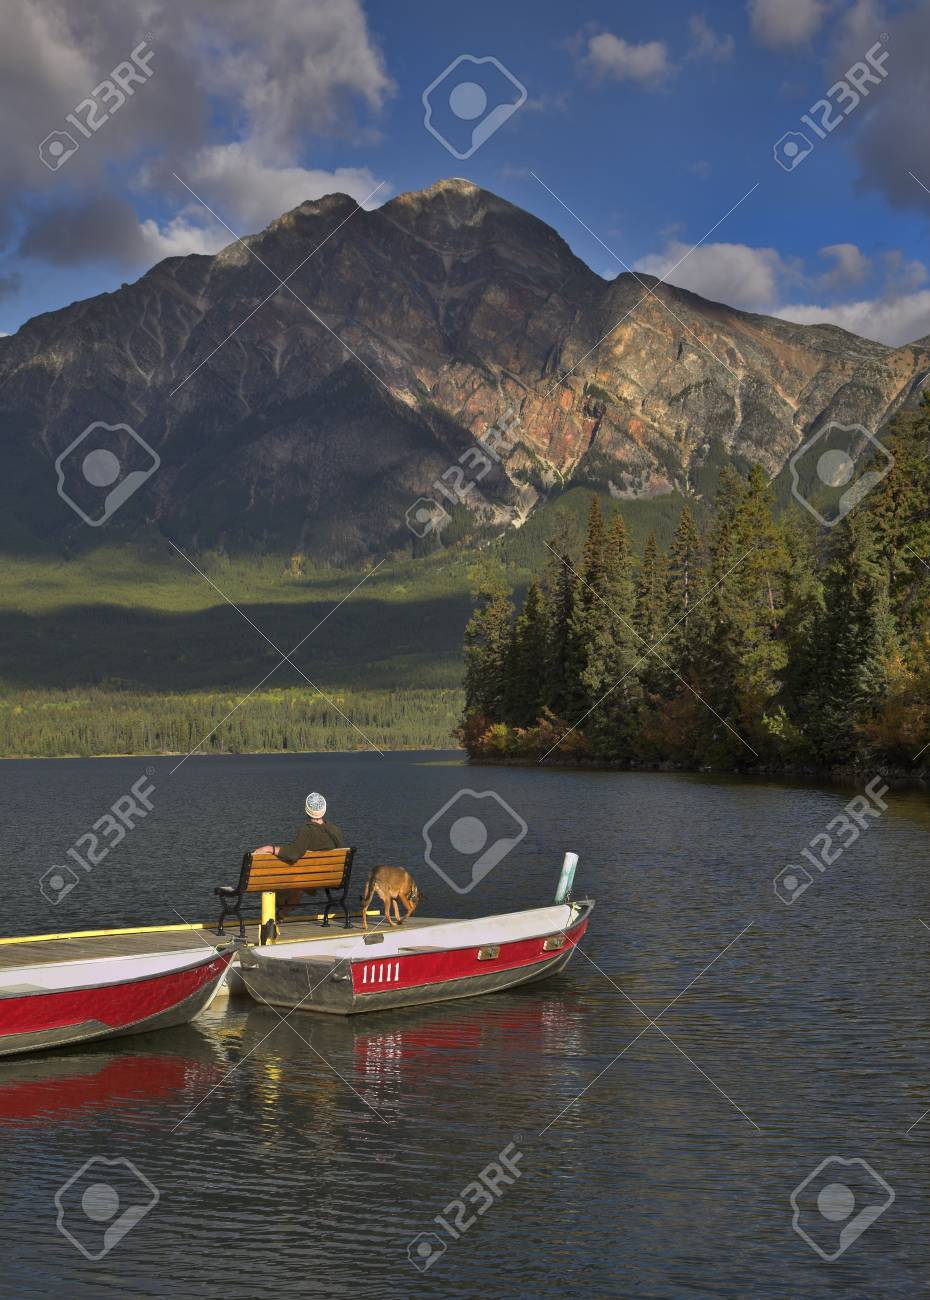 The tourist having a rest on a bench on a boat pier Stock Photo - 3925159